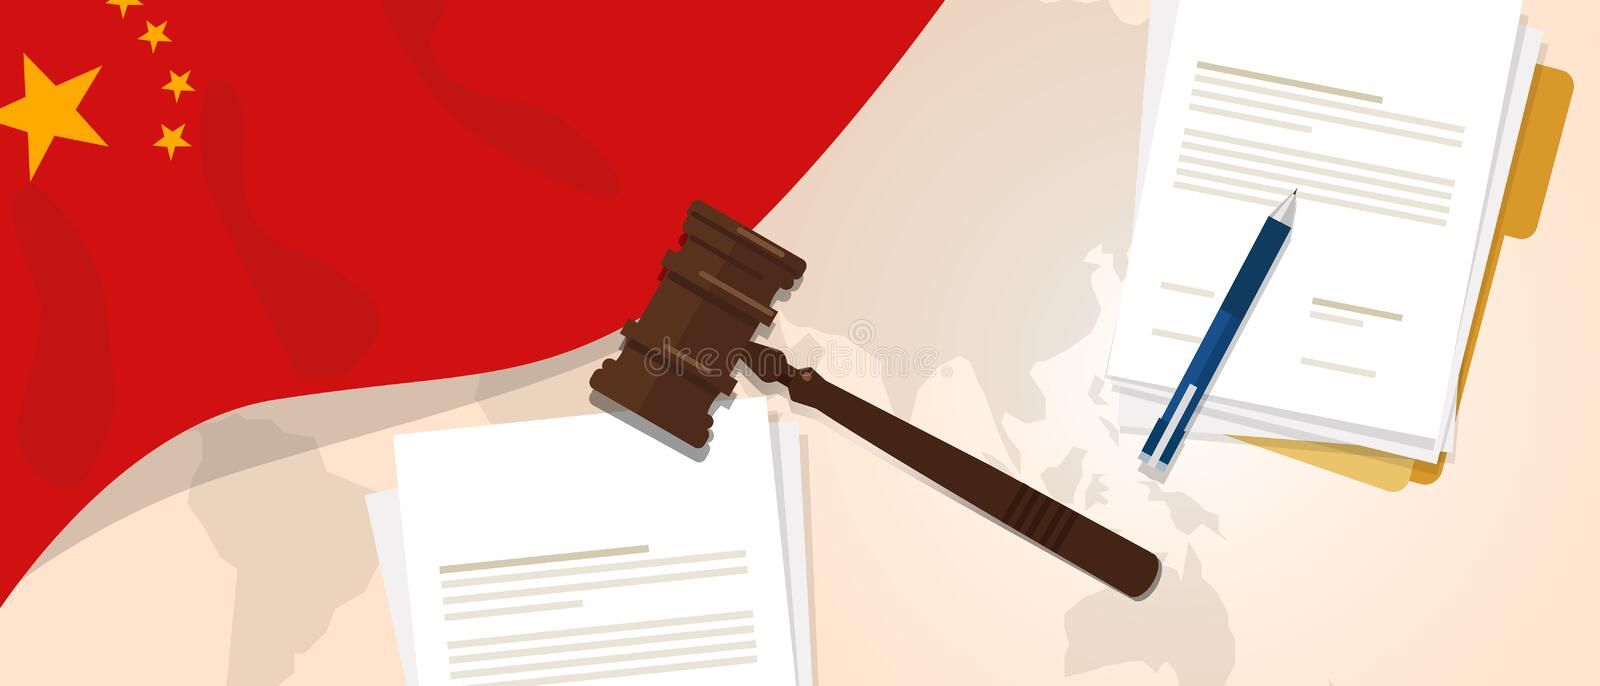 China law constitution legal judgment justice legislation trial concept using flag gavel paper and pen royalty free illustration